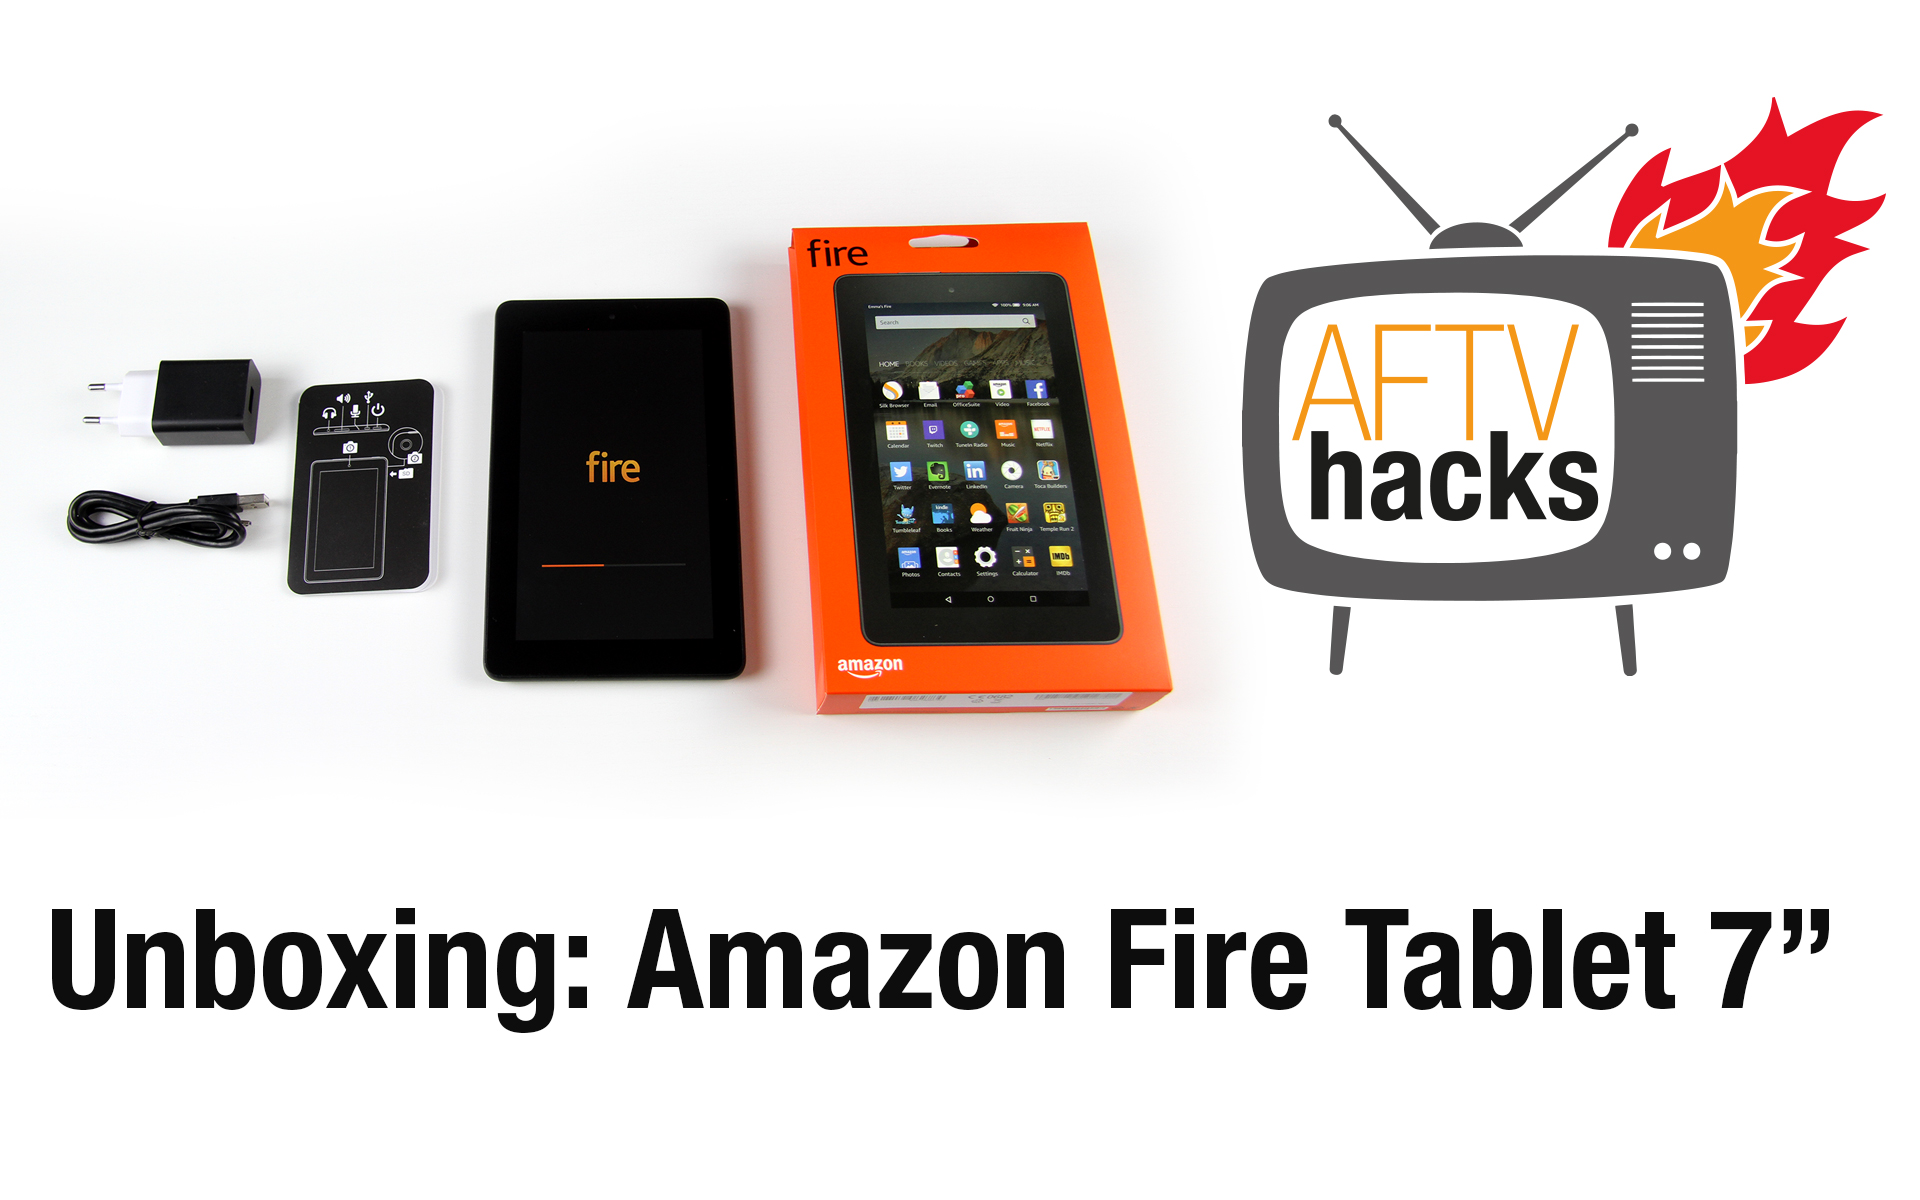 Unboxing & Ersteindruck: Amazon Fire 7″ Tablet für 59,99€